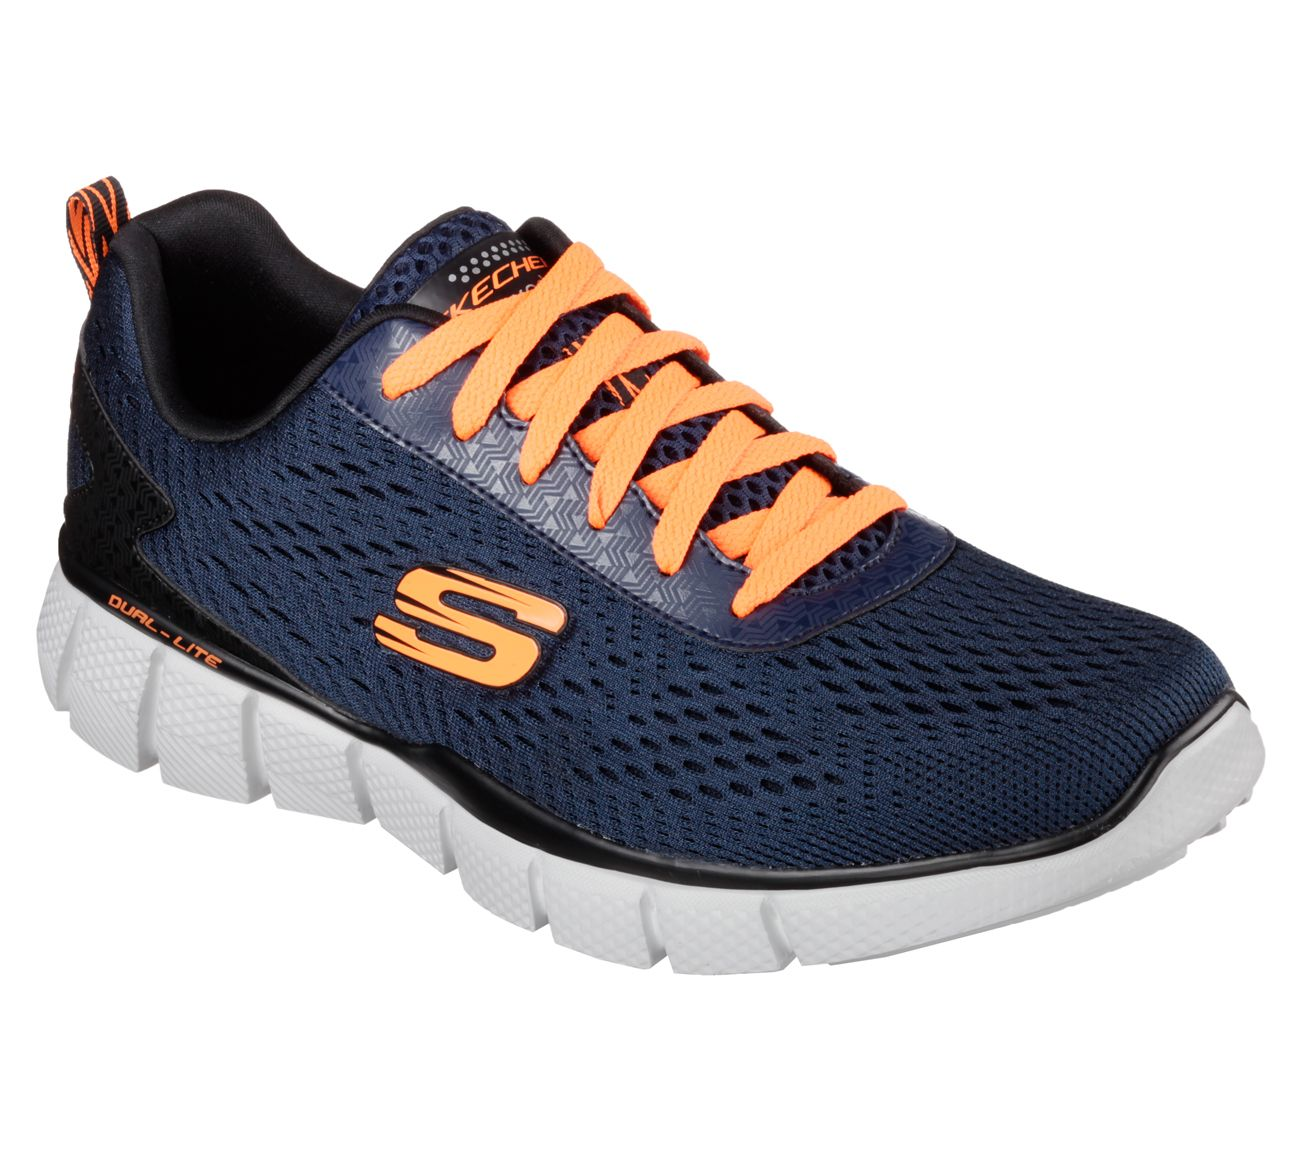 skechers for men 2016